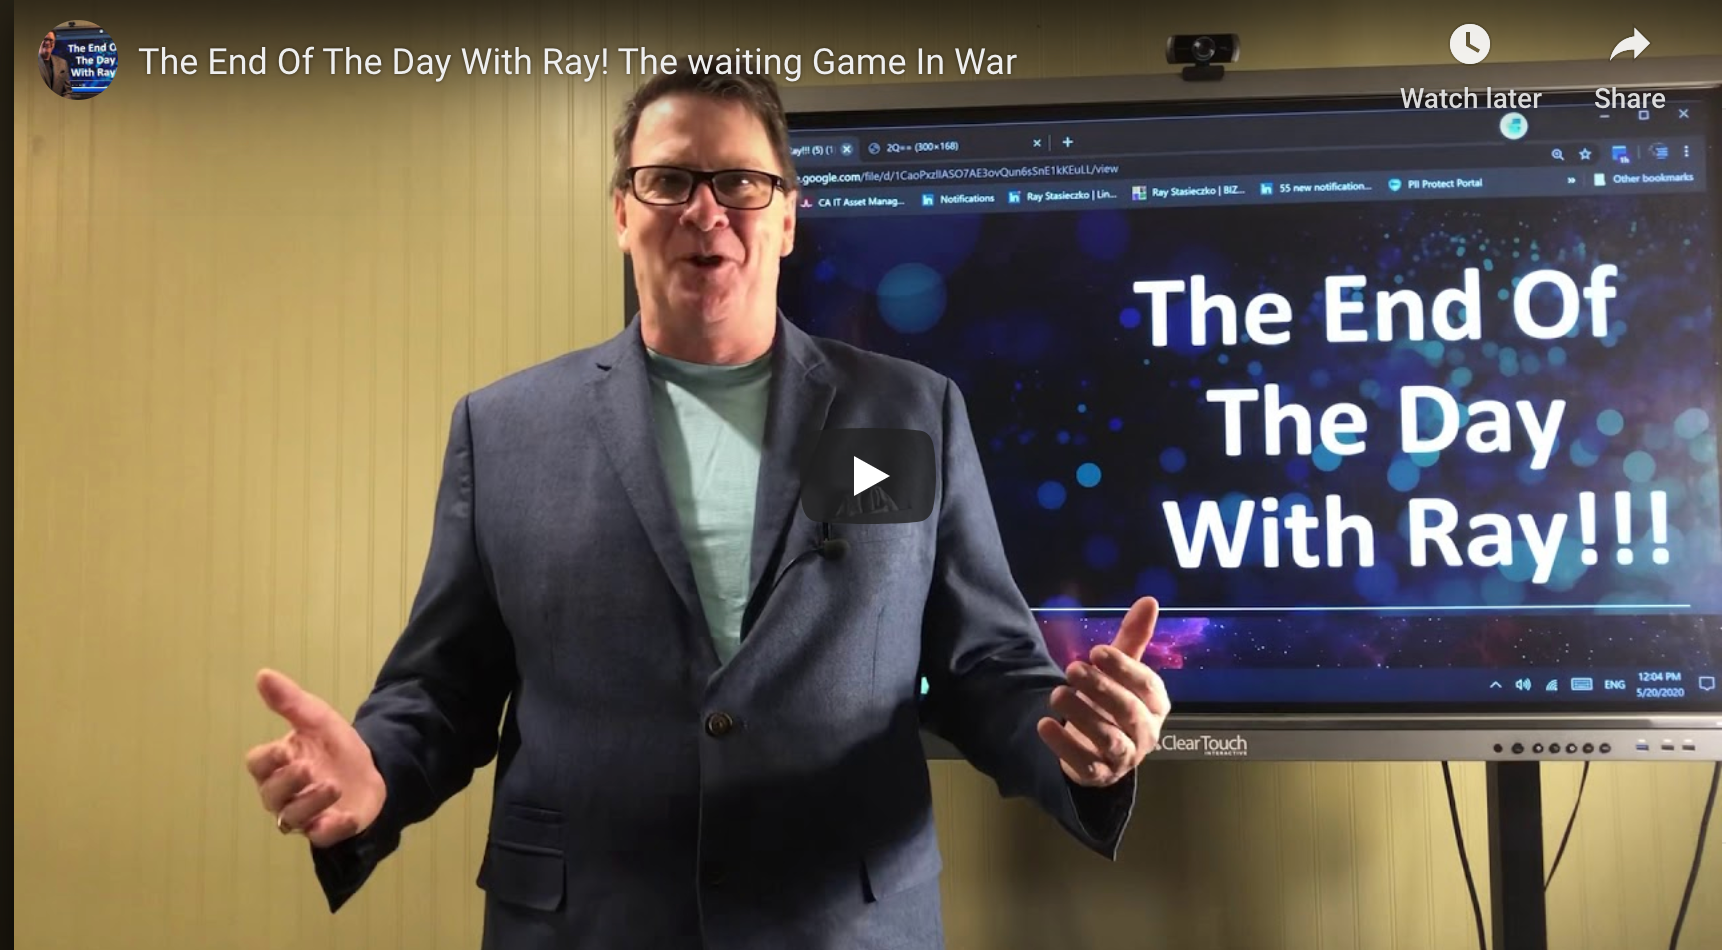 The End Of The Day With Ray! The waiting Game In War